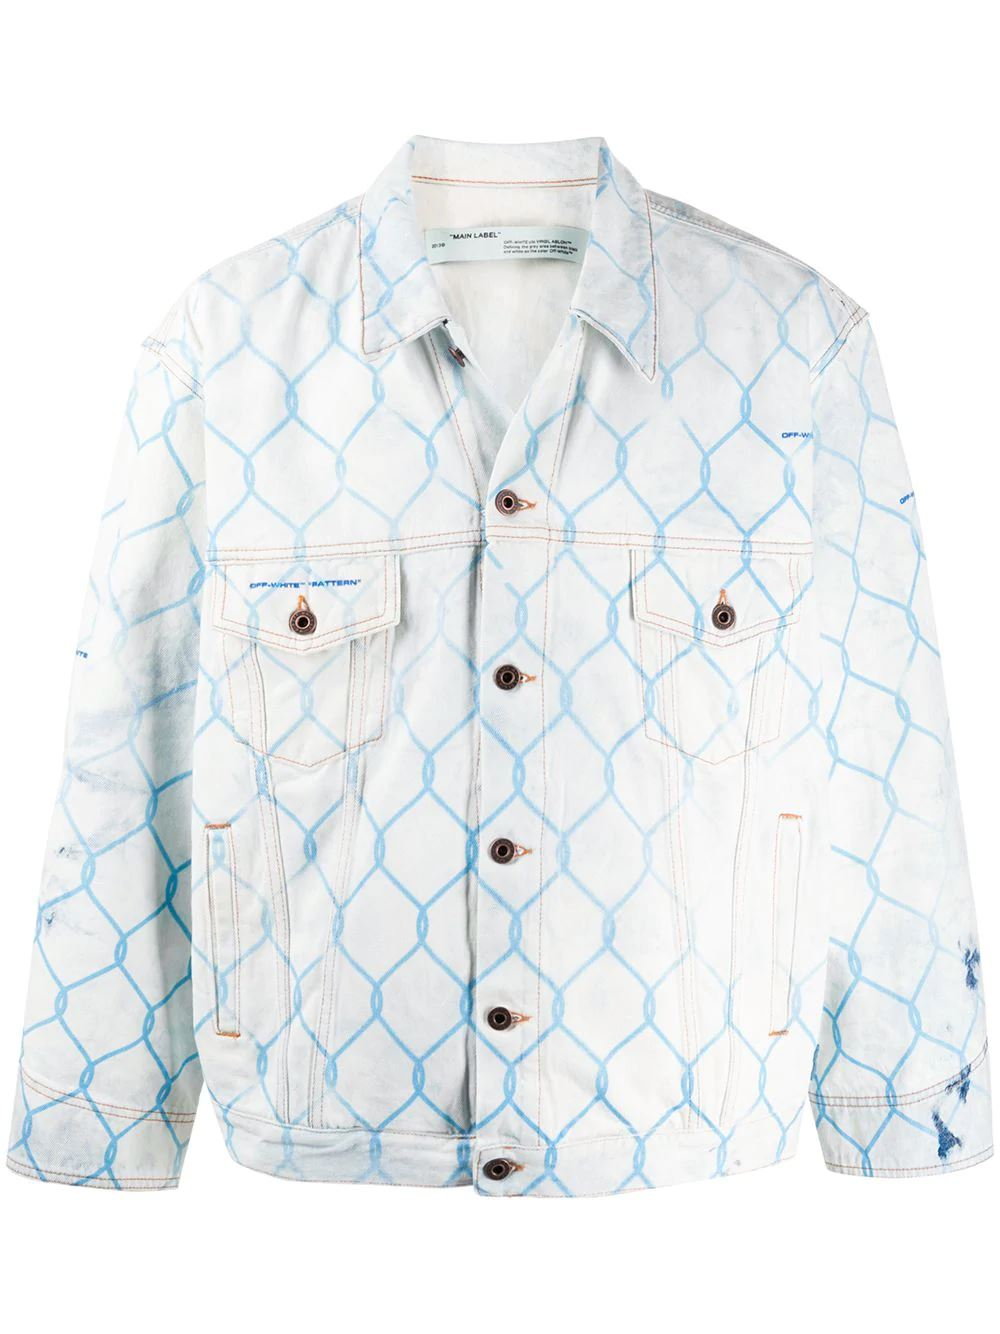 OFF-WHITE fence denim jacket - Maison De Fashion